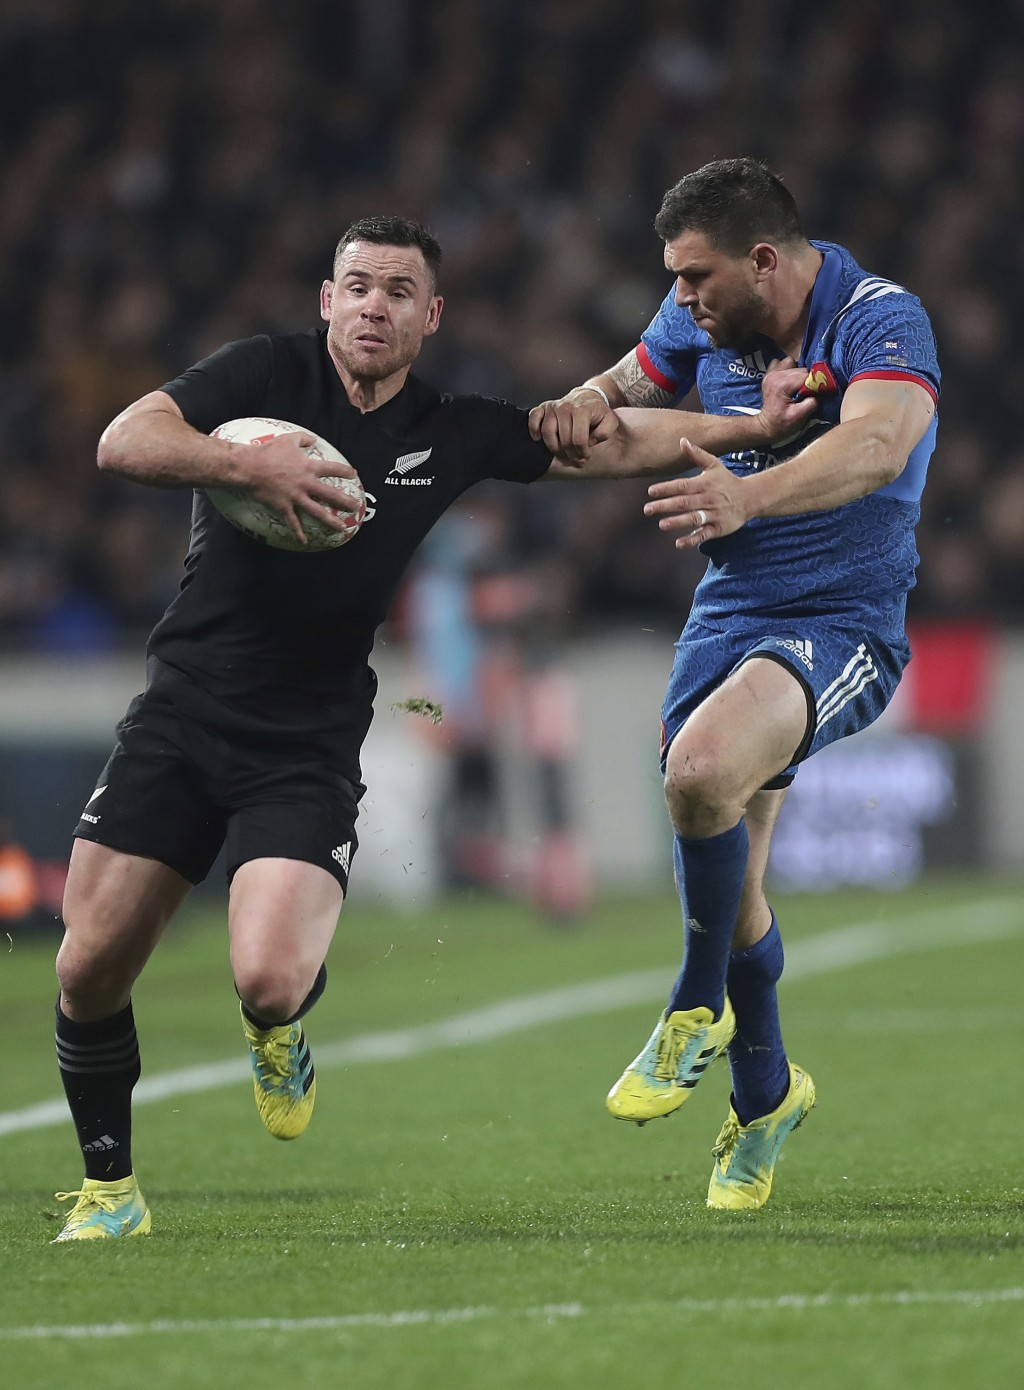 Ryan Crotty, left, of New Zealand is tackled by Remy Grosso of France during their rugby test in Auckland, New Zealand, Saturday, June 9, 2018. (AP Ph